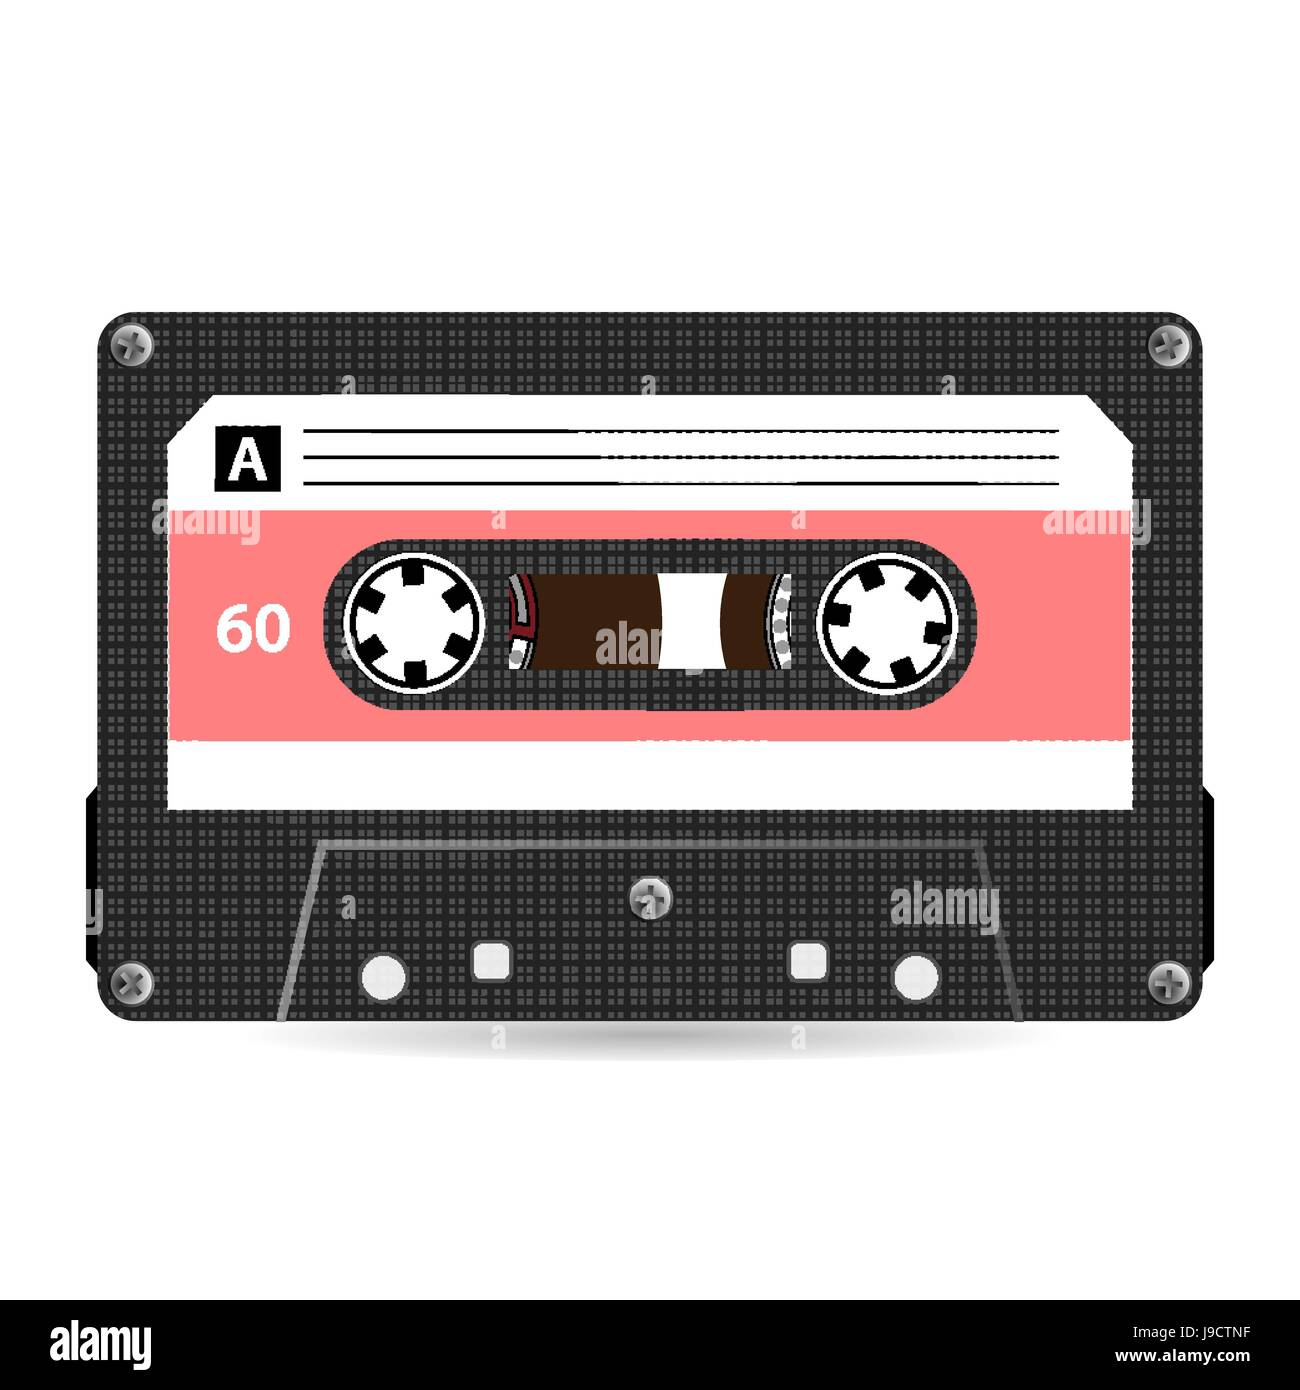 Retro Audio Cassette Vector. Plastic Audio Cassette Tape. Old Technology, Realistic Design Illustration. Isolated - Stock Vector